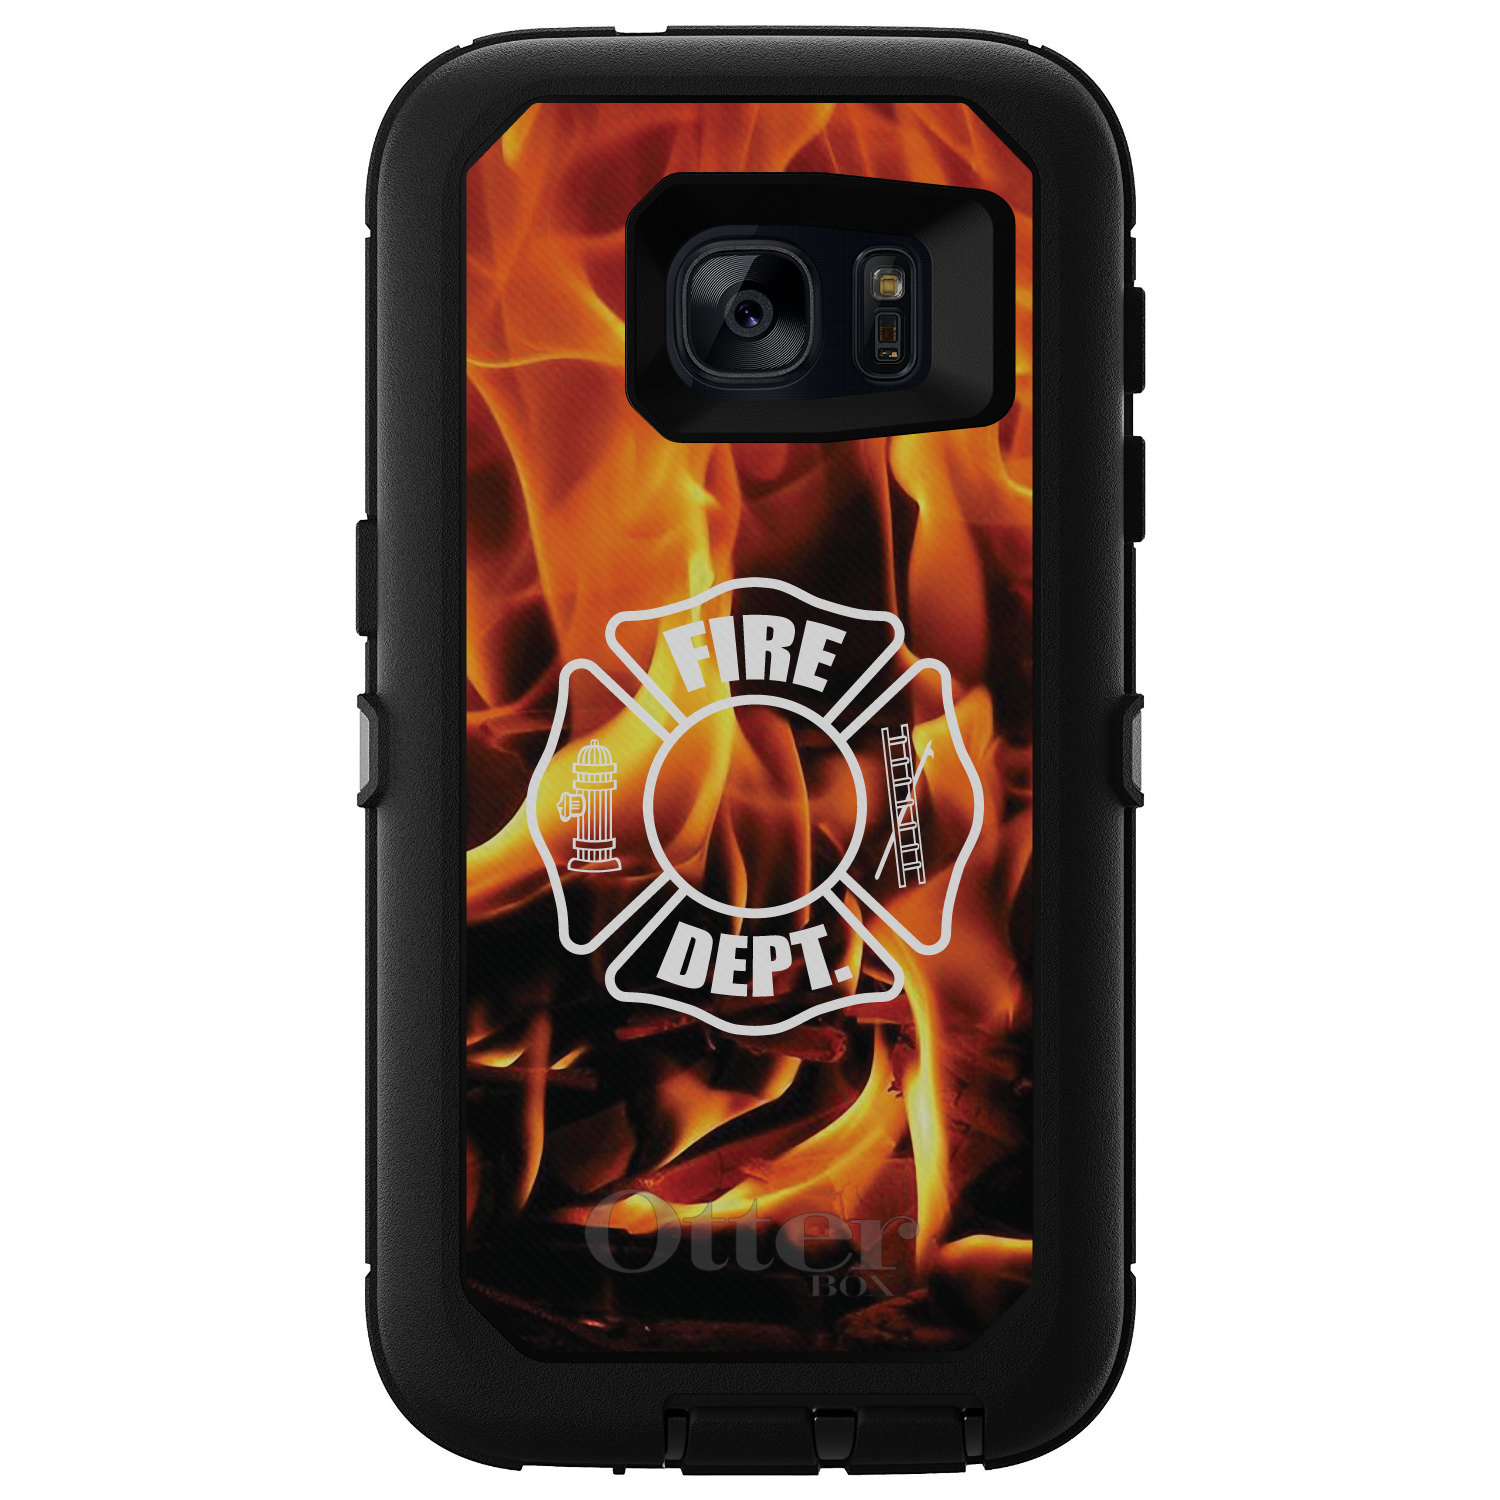 DistinctInk™ Custom Black OtterBox Defender Series Case for Samsung Galaxy S7 - Flames Fire Department